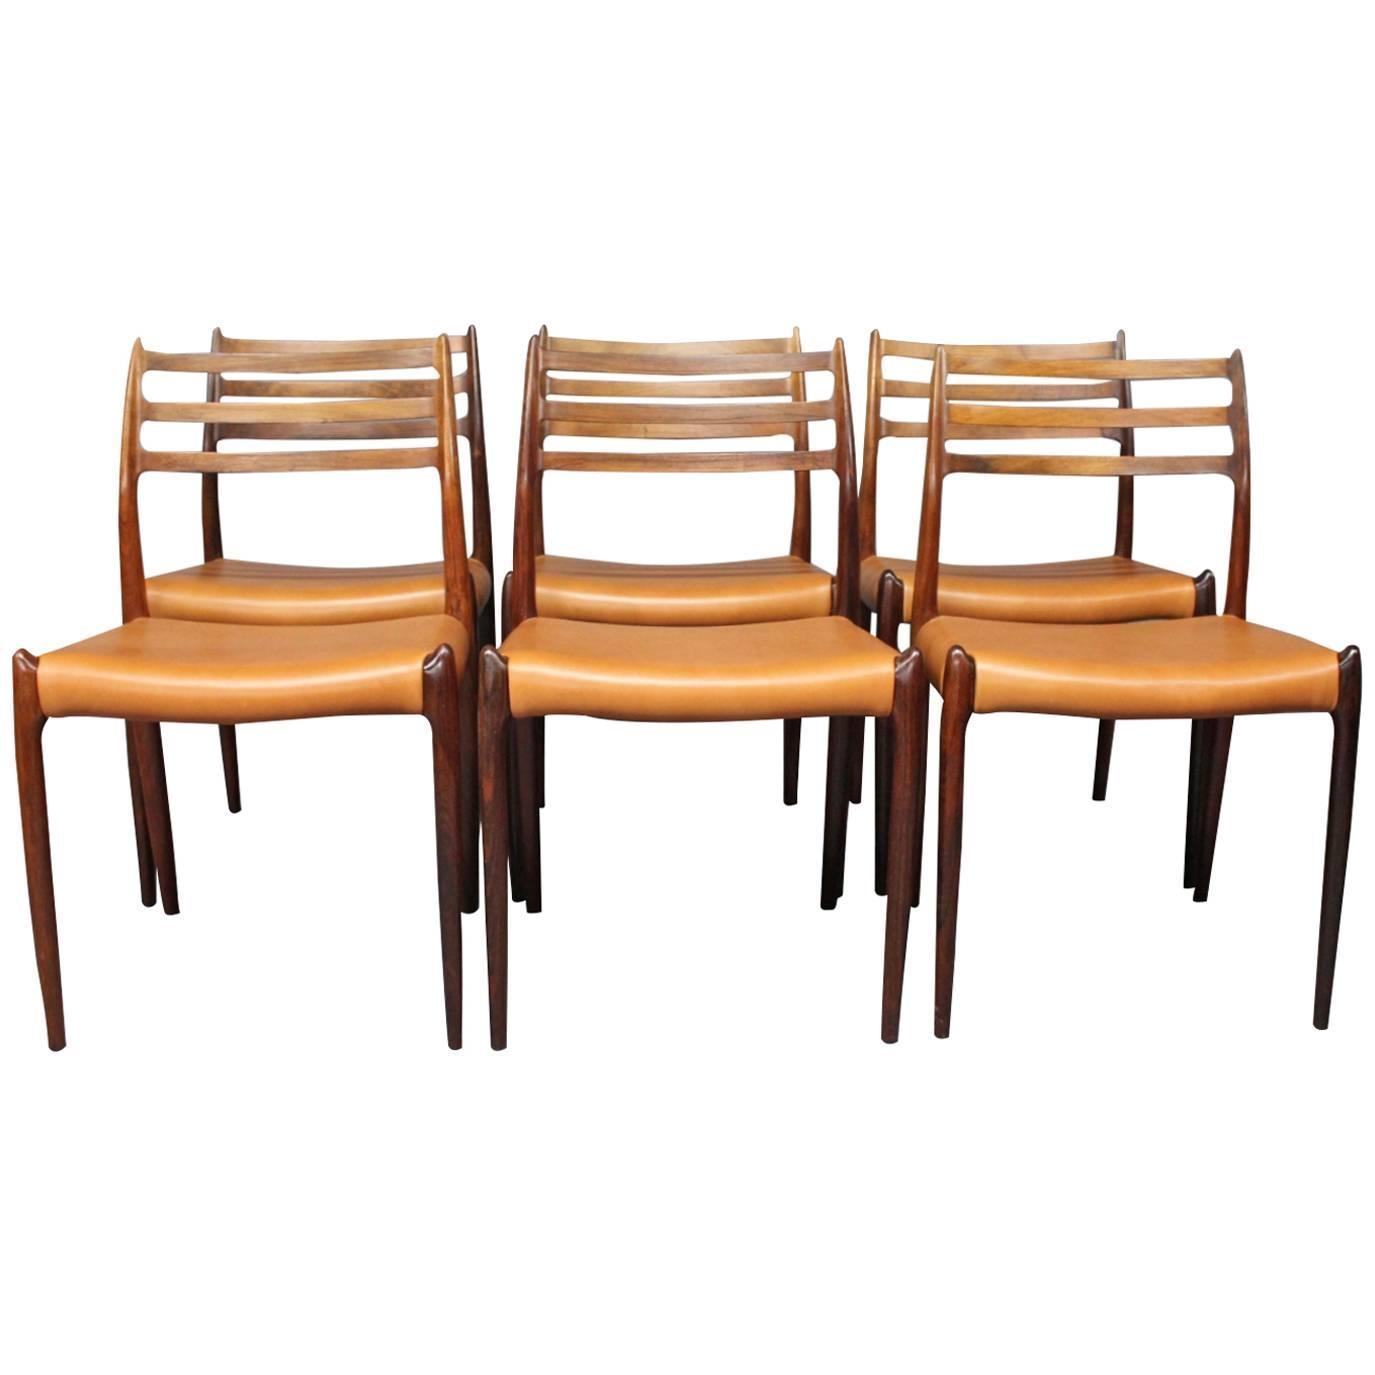 Set of six dining room chairs model 78 by n o moeller for 1970 dining room set